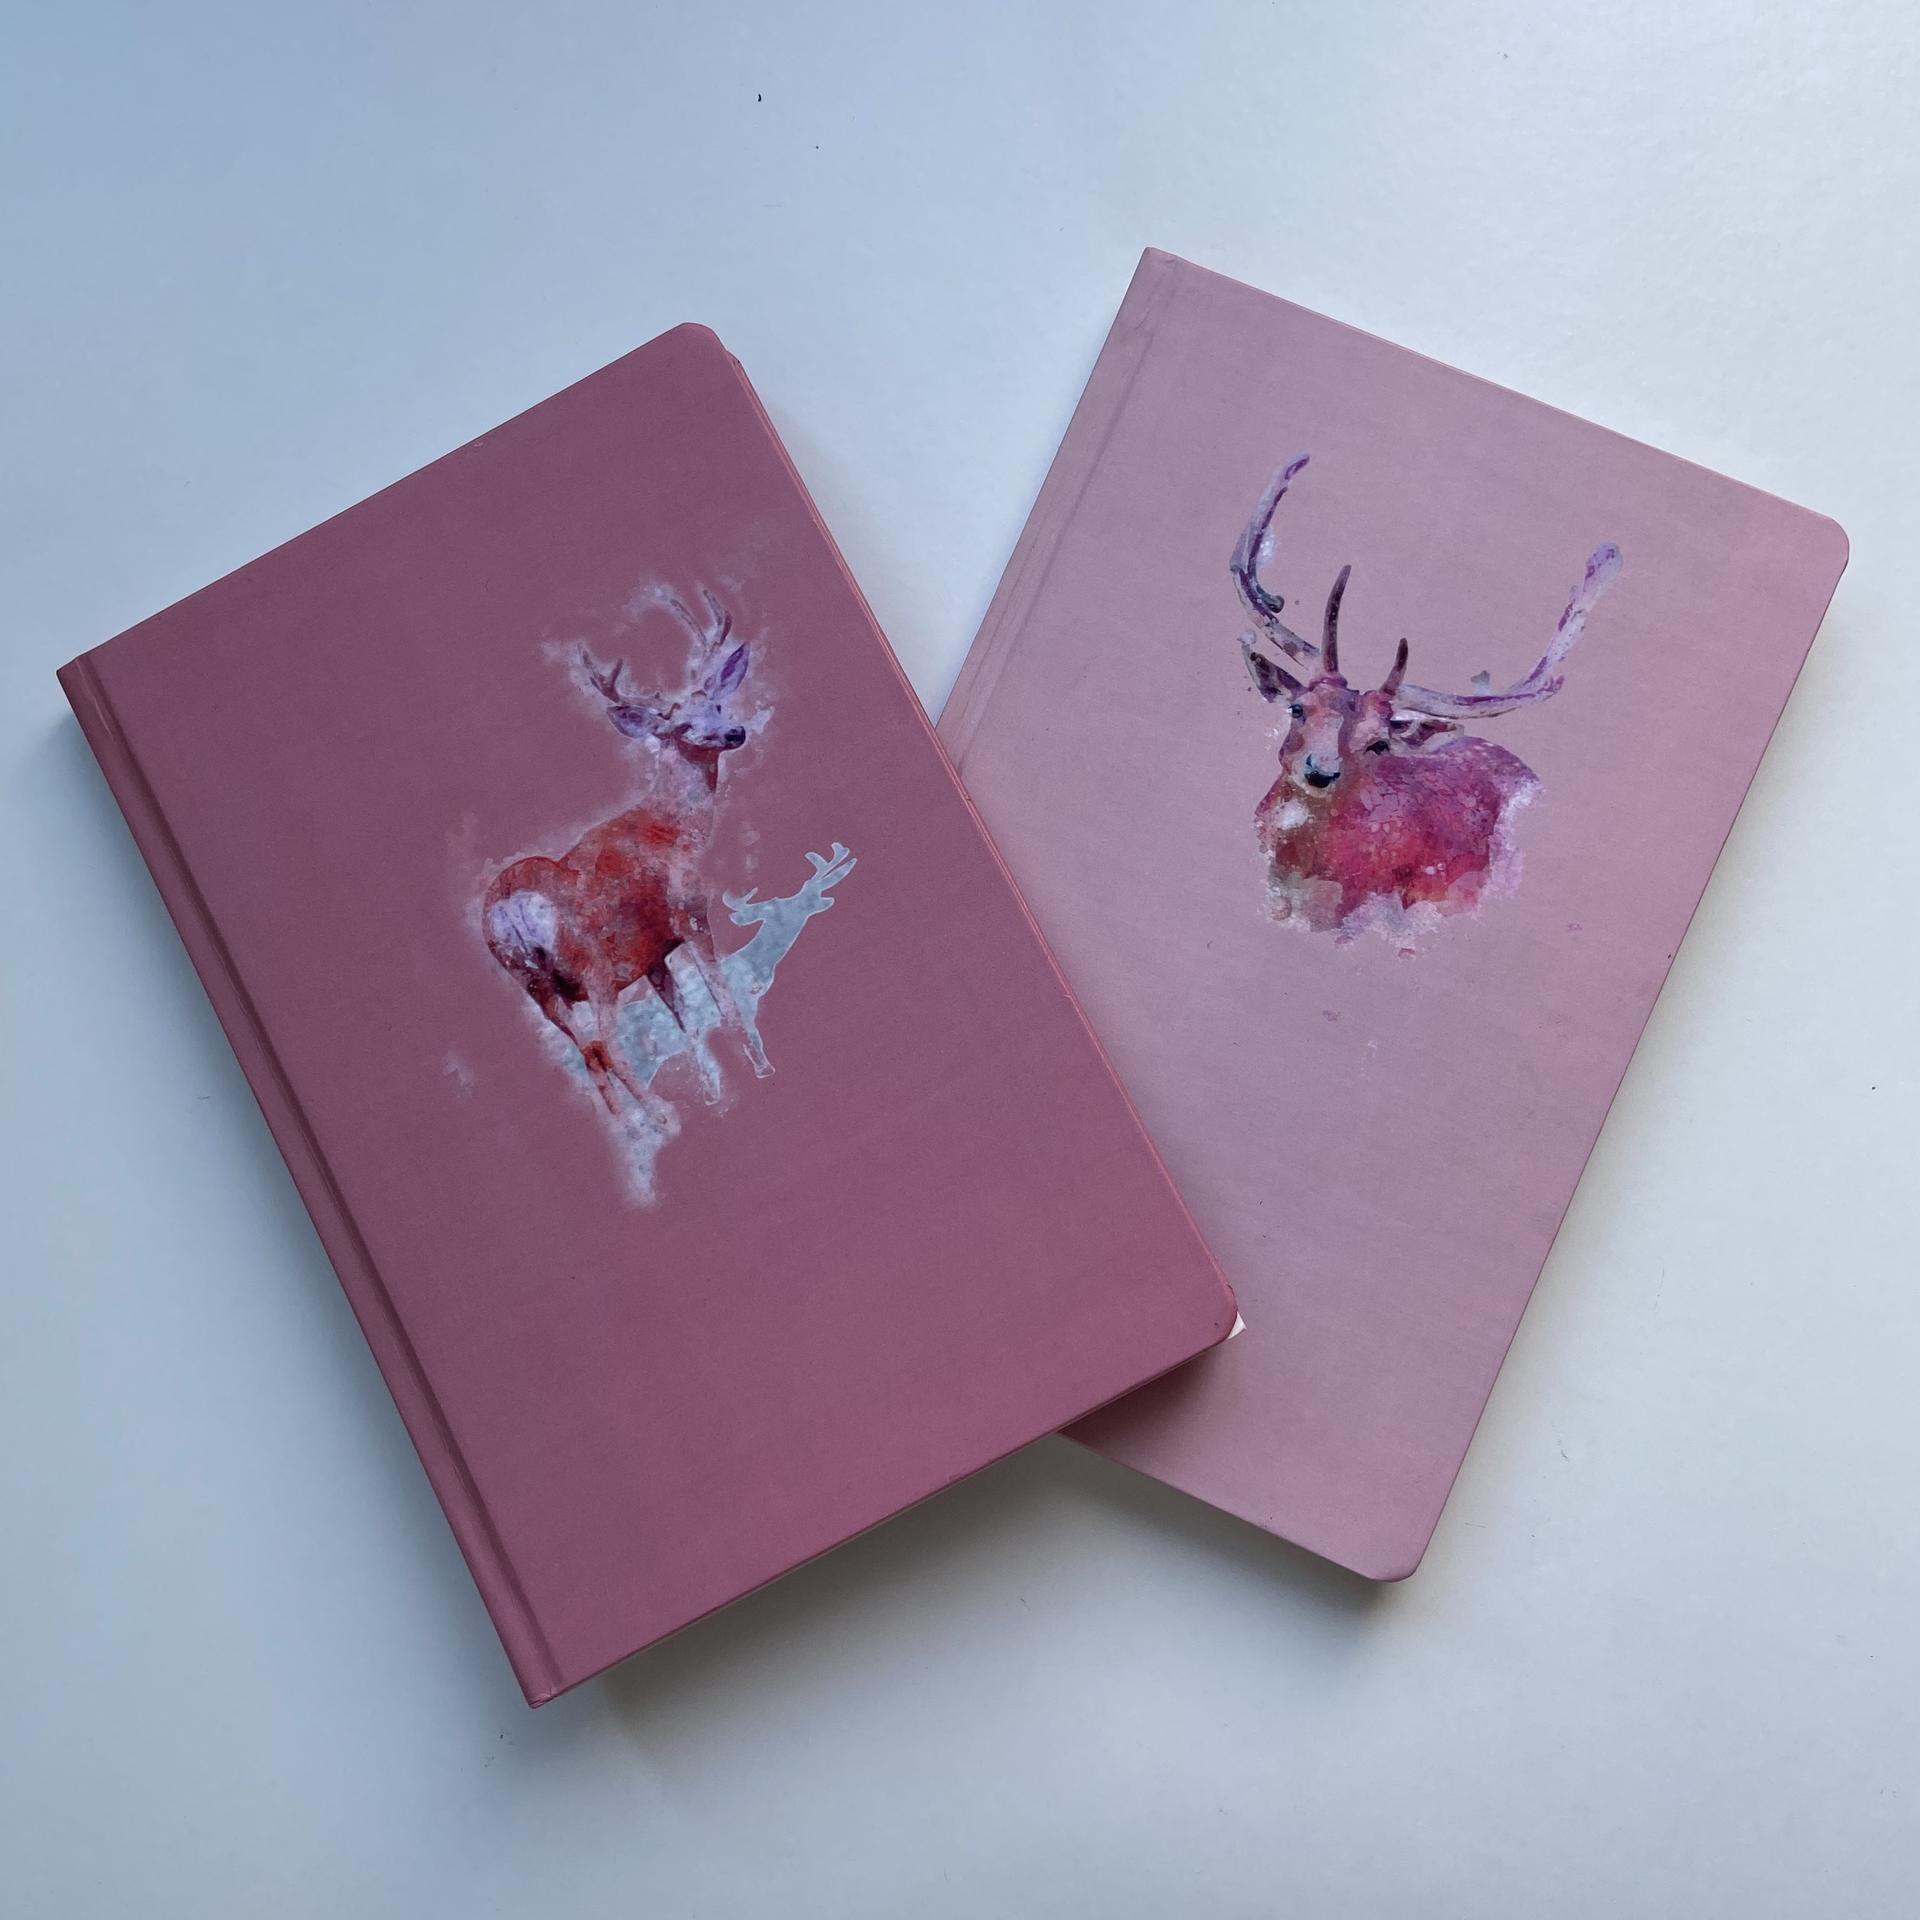 product-Pink Diary Composition Books Hardcover Business Notebook With Book Mark-Dezheng-img-1